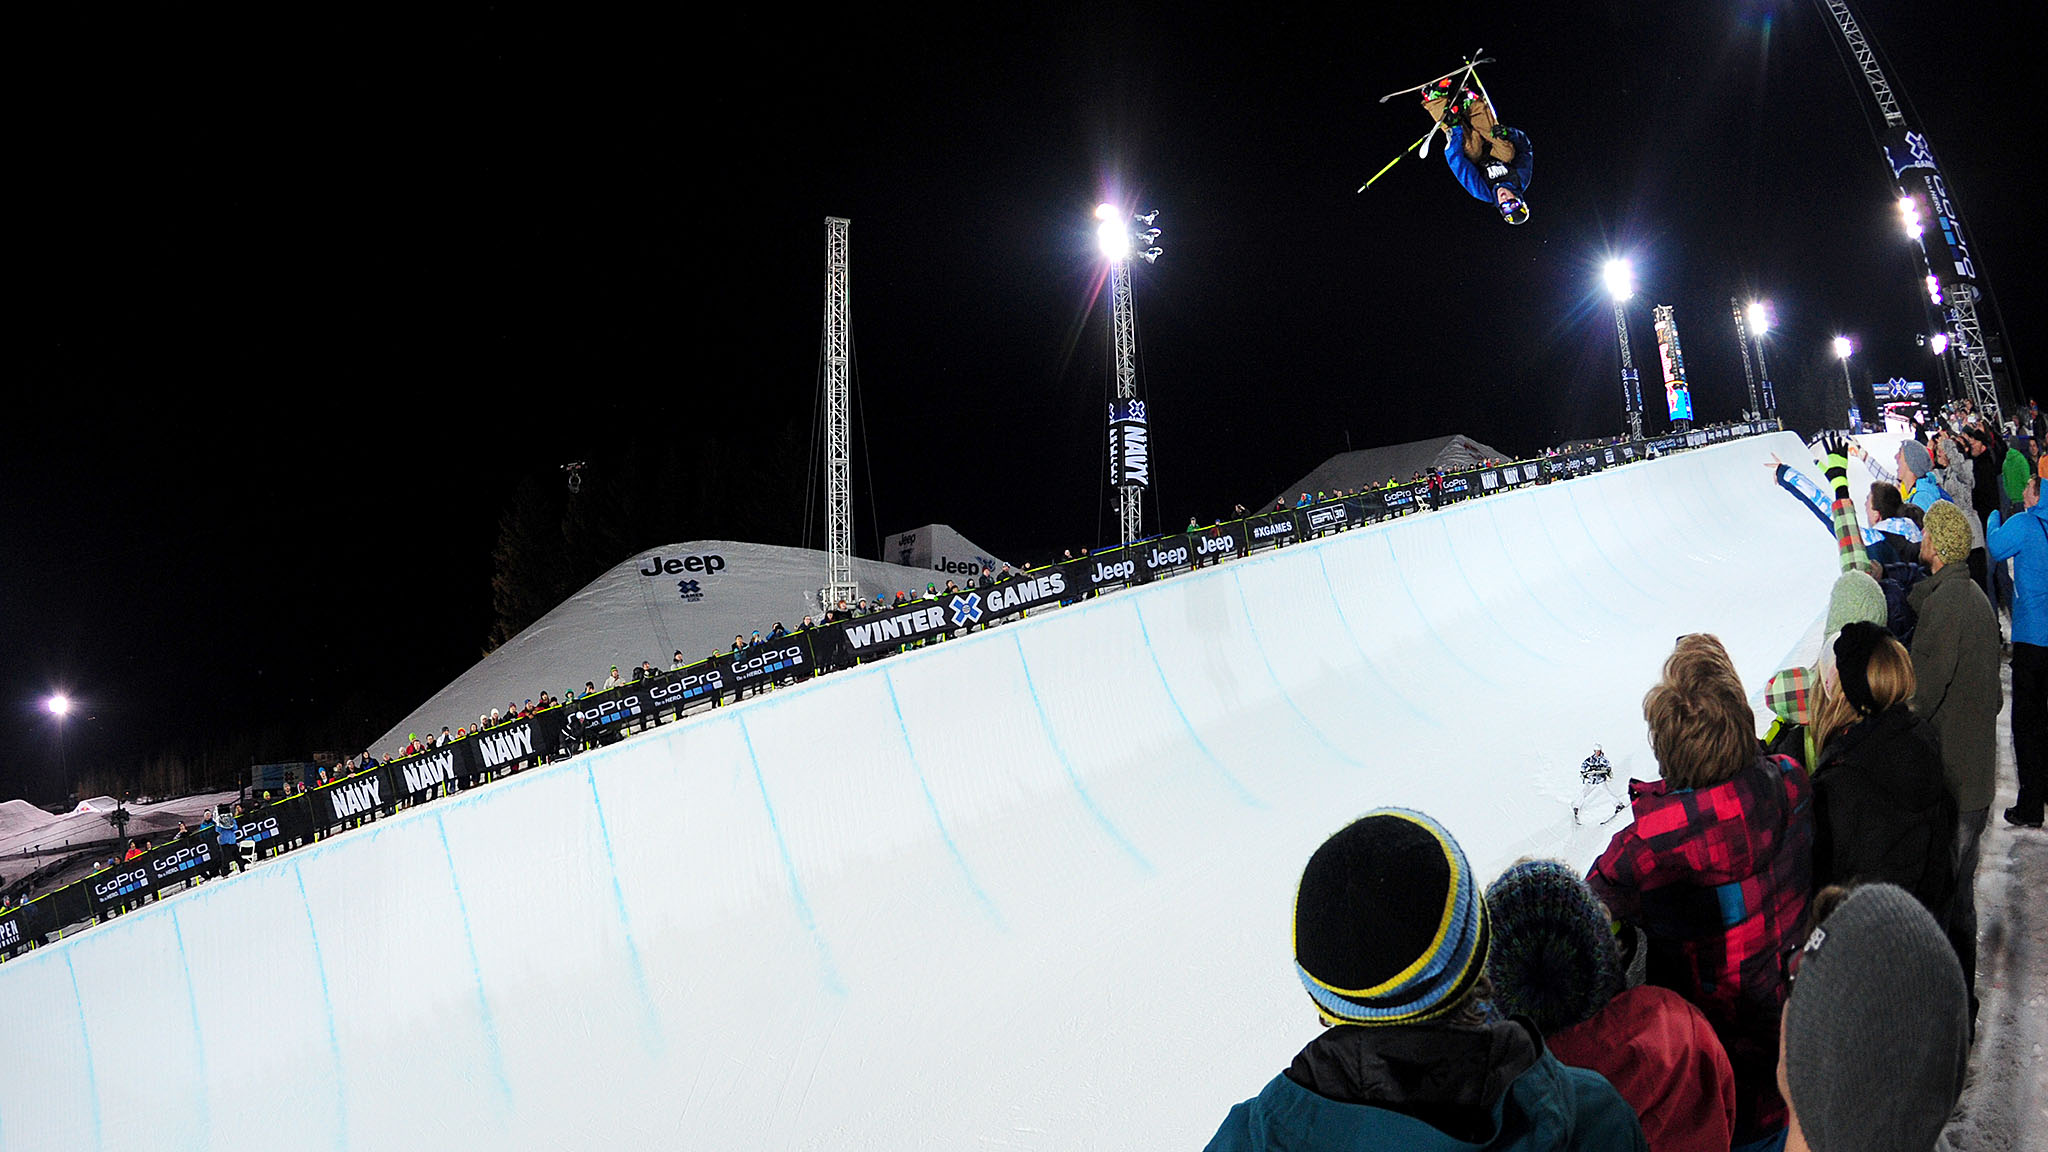 David Wise successfully defended his gold medal in the Men's Ski SuperPipe.